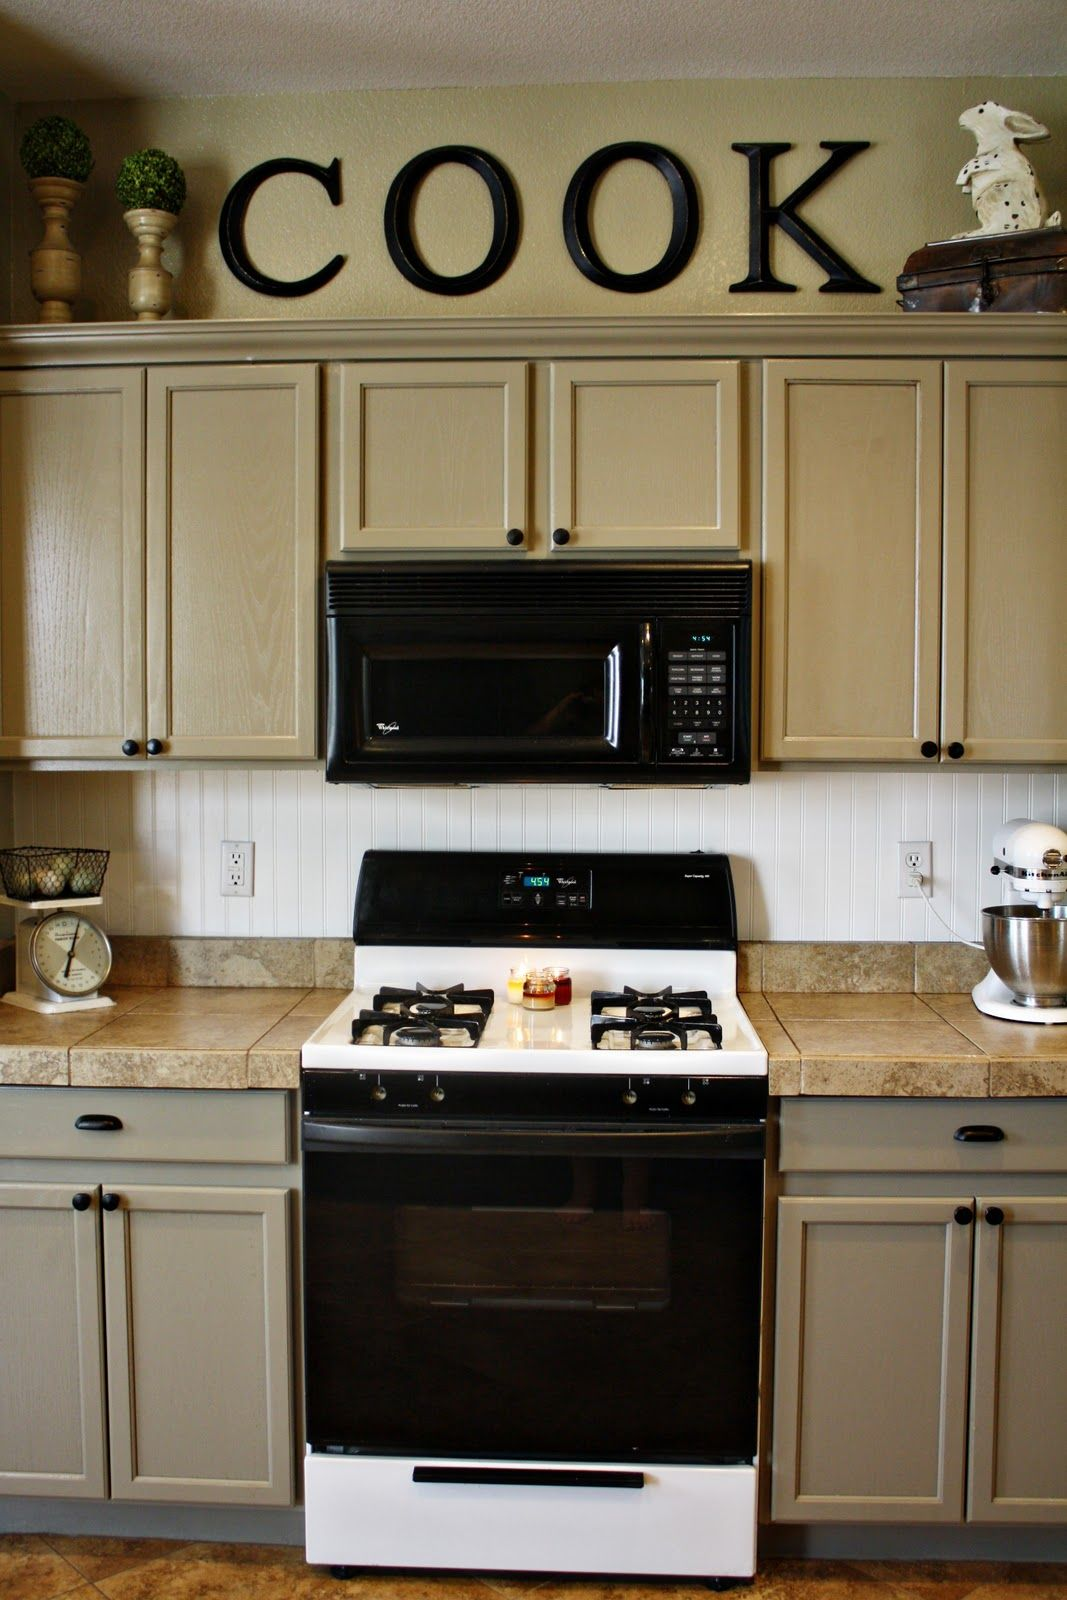 Img 6318 Jpg 1 067 1 600 Pixels Kitchen Cabinets Decor Decorating Above Kitchen Cabinets Above Kitchen Cabinets